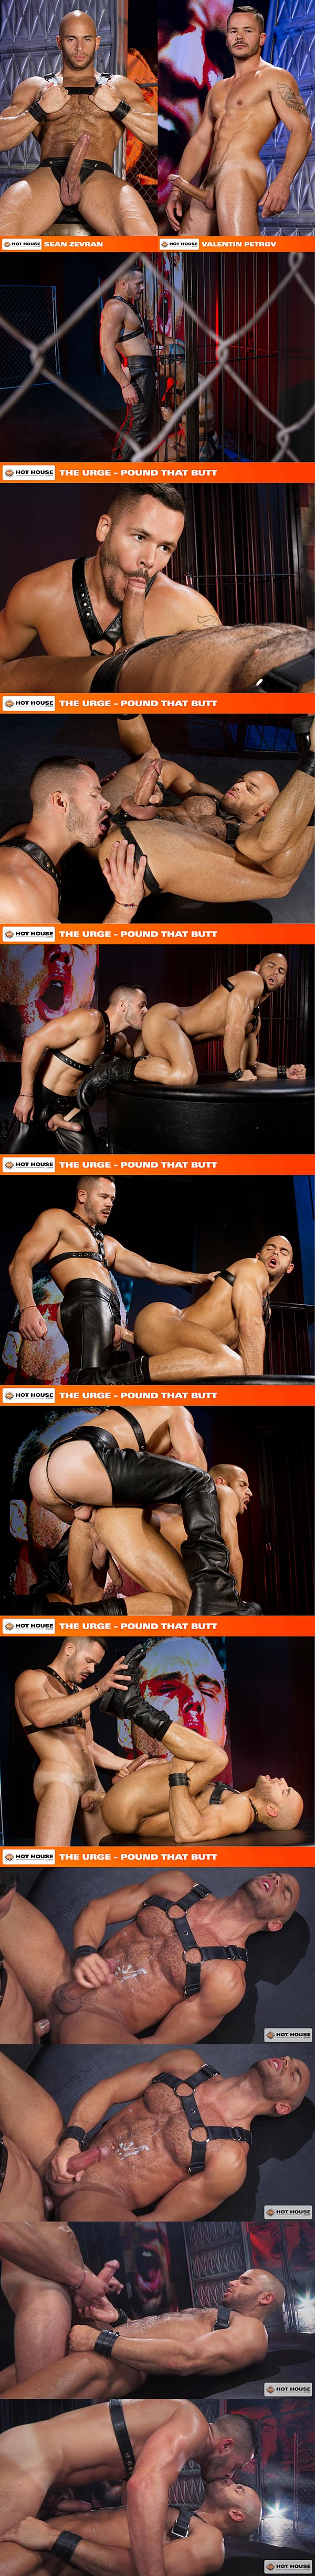 Valentin Petrov pounds Sean Zevran's hot muscle ass before he fucks a big thick load out of Sean in The Urge Pound That Butt at Hothouse 02